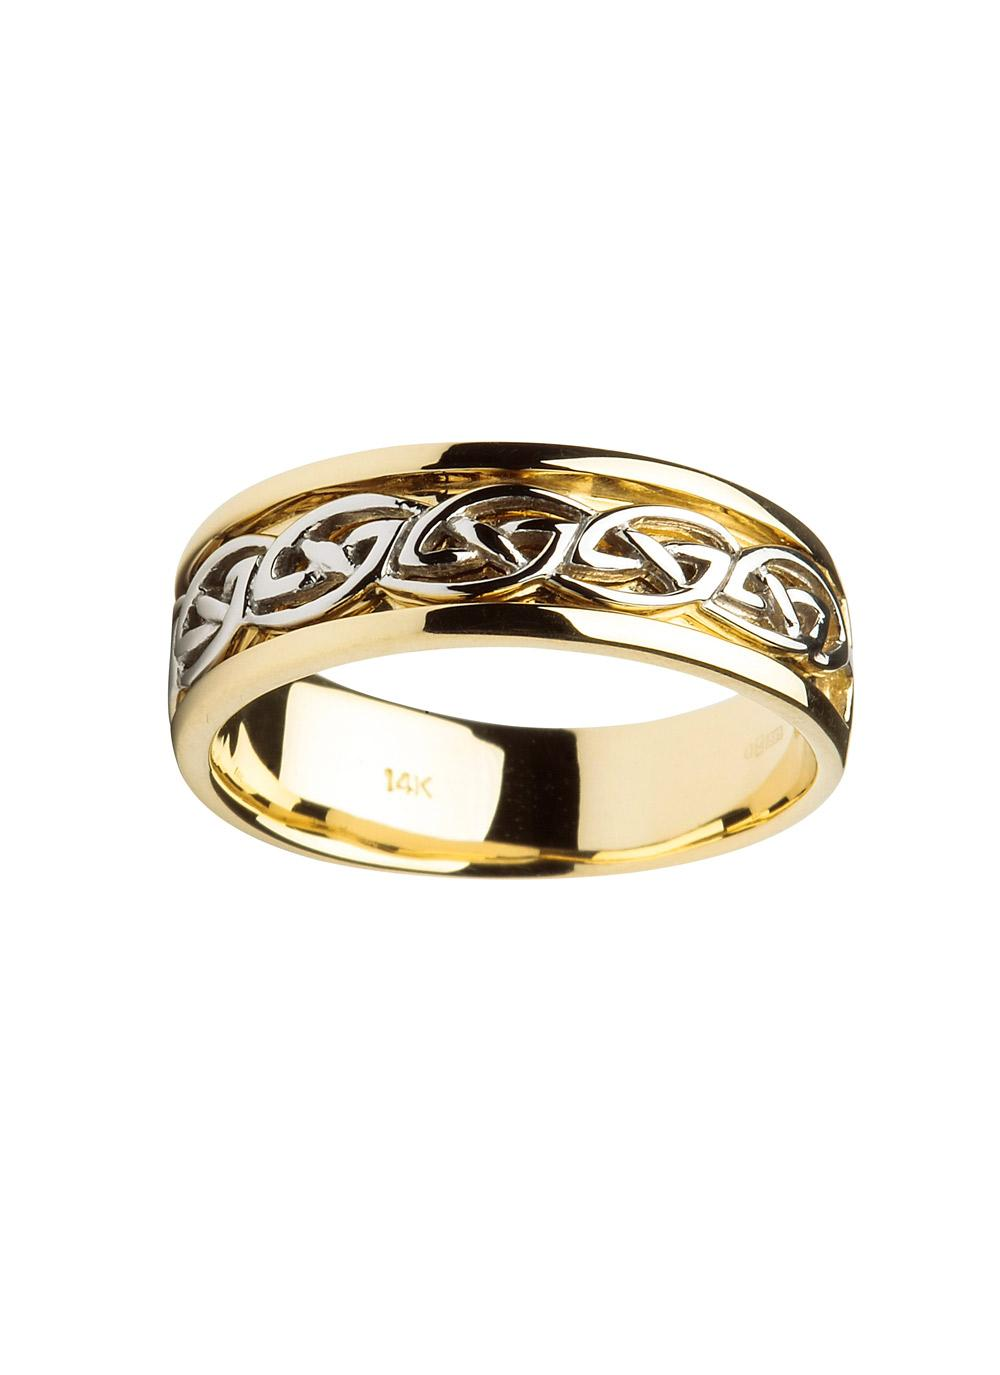 gents 14k gold celtic knot wedding ring blarney